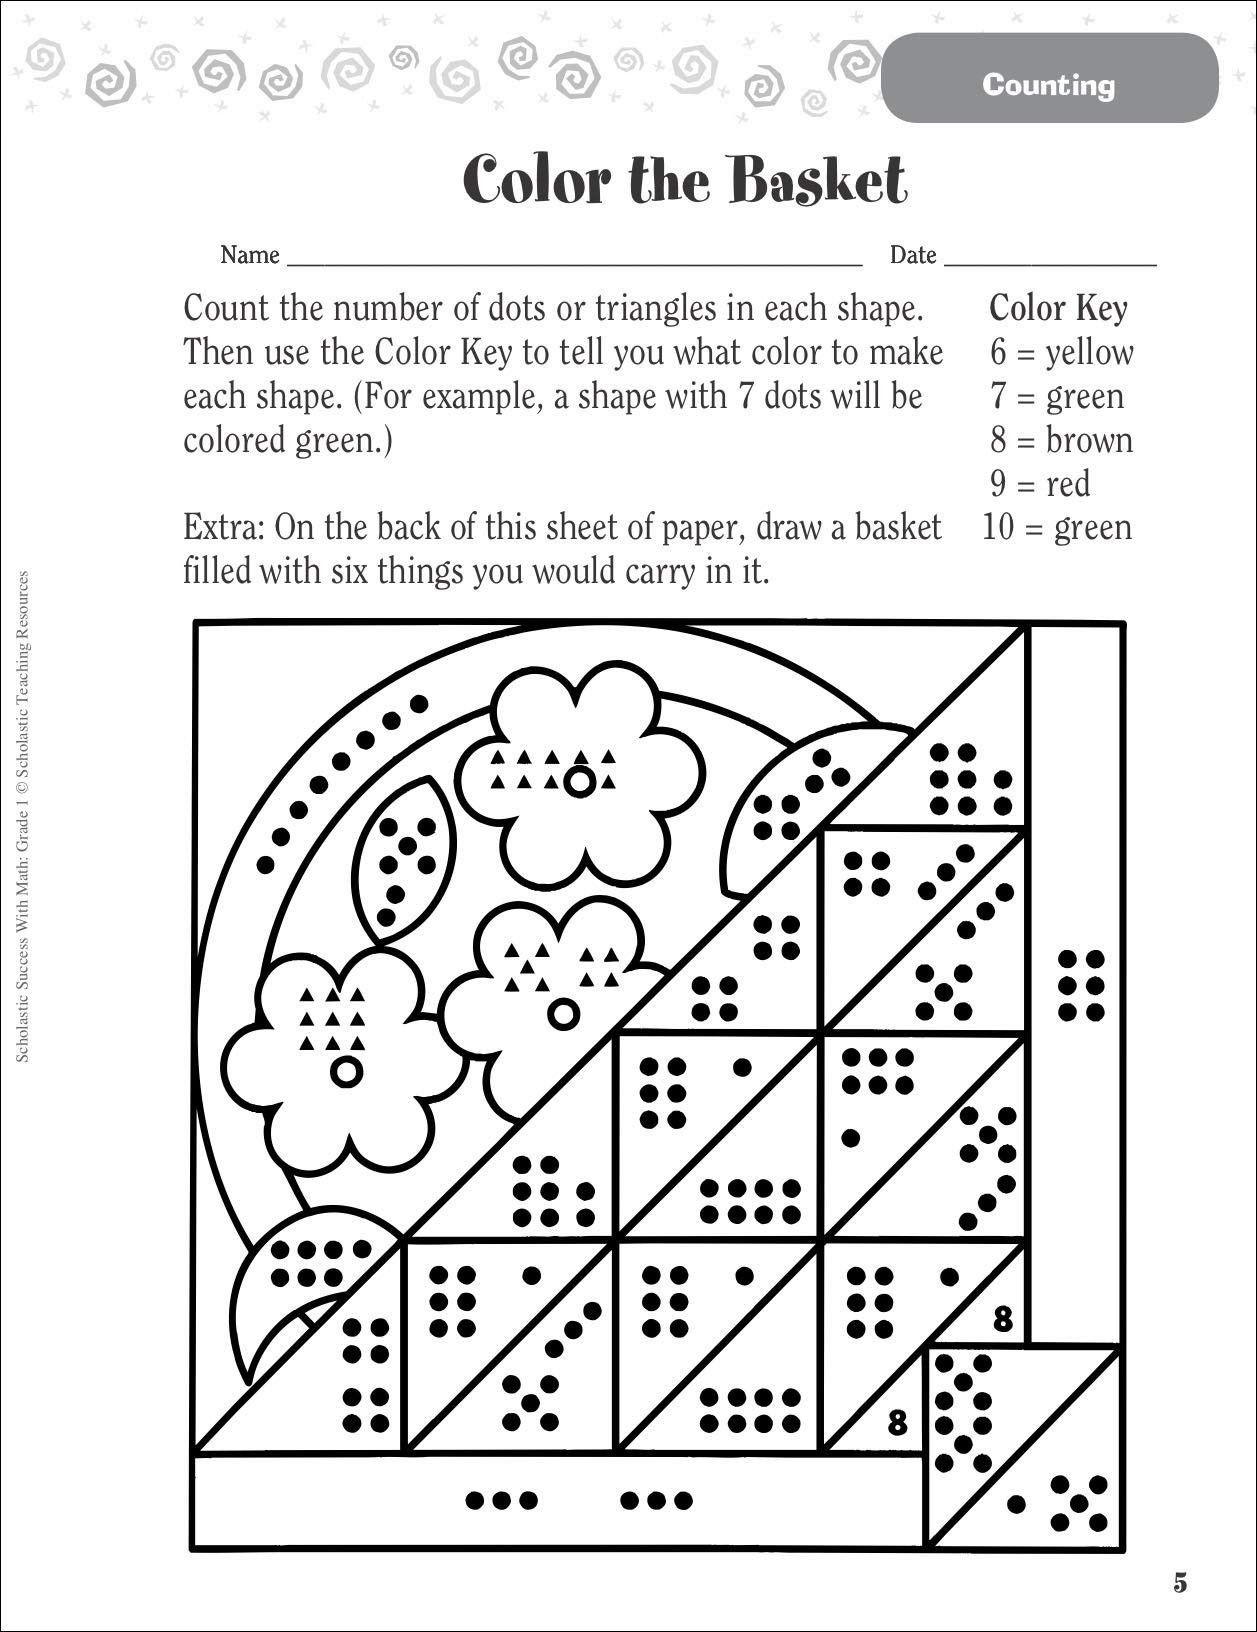 Homophone Worksheets Middle School Math Word Problems Year 4 Free Math Worksheets for Grade 5